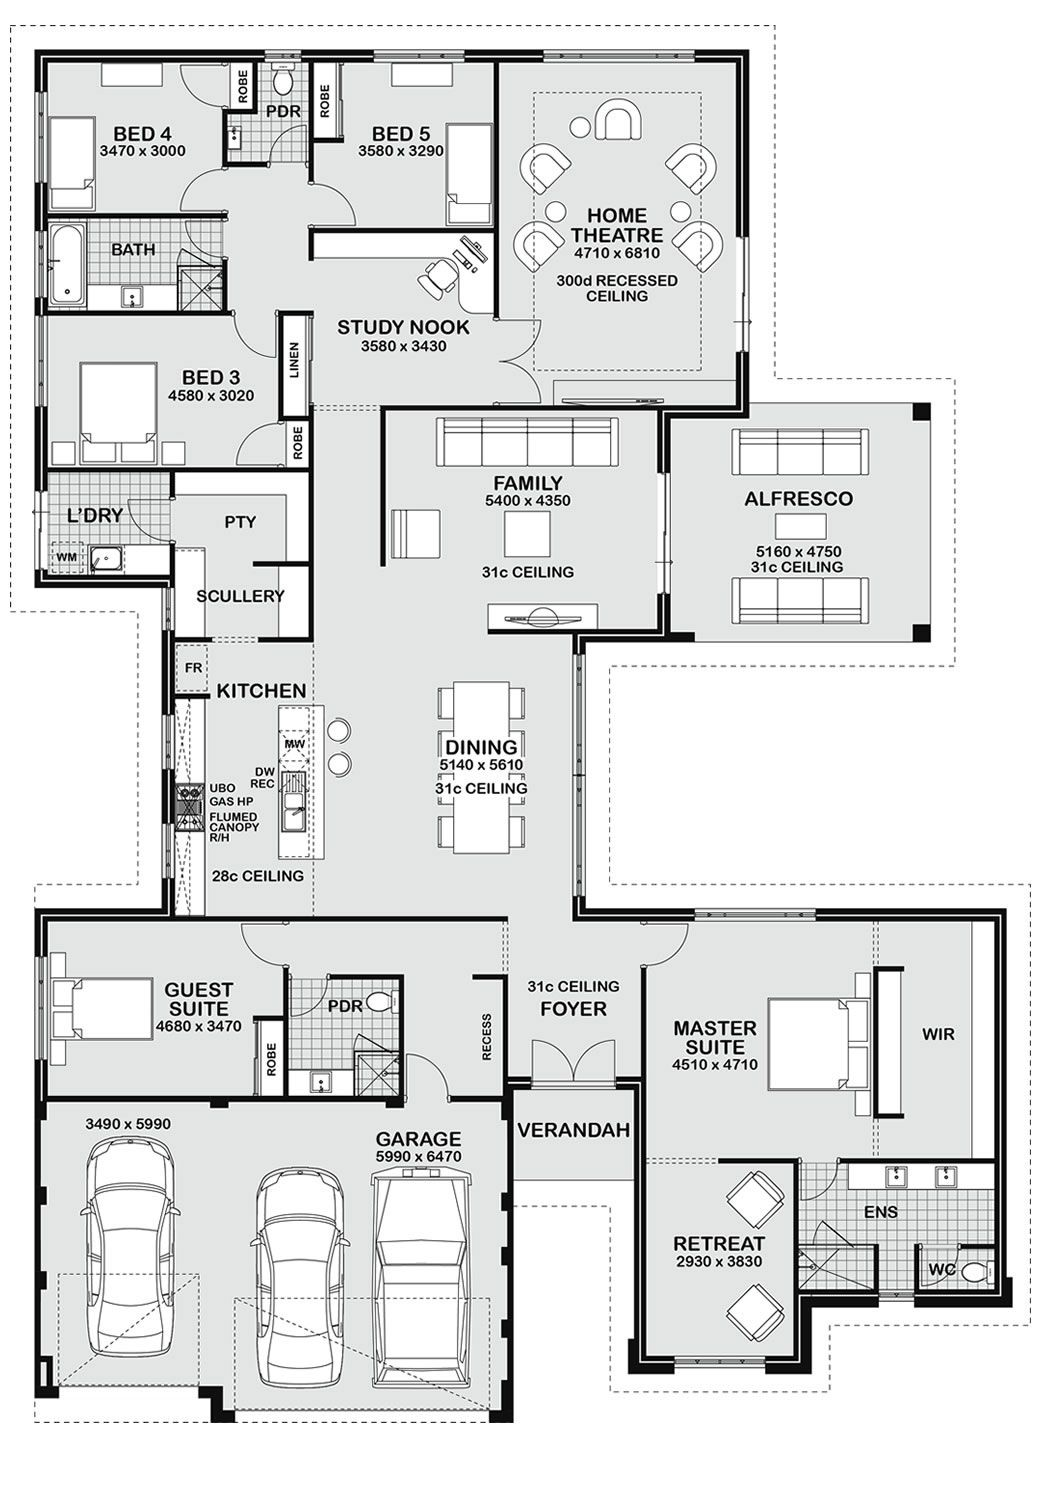 Floor Plan Friday 5 bedroom entertainer Dream house